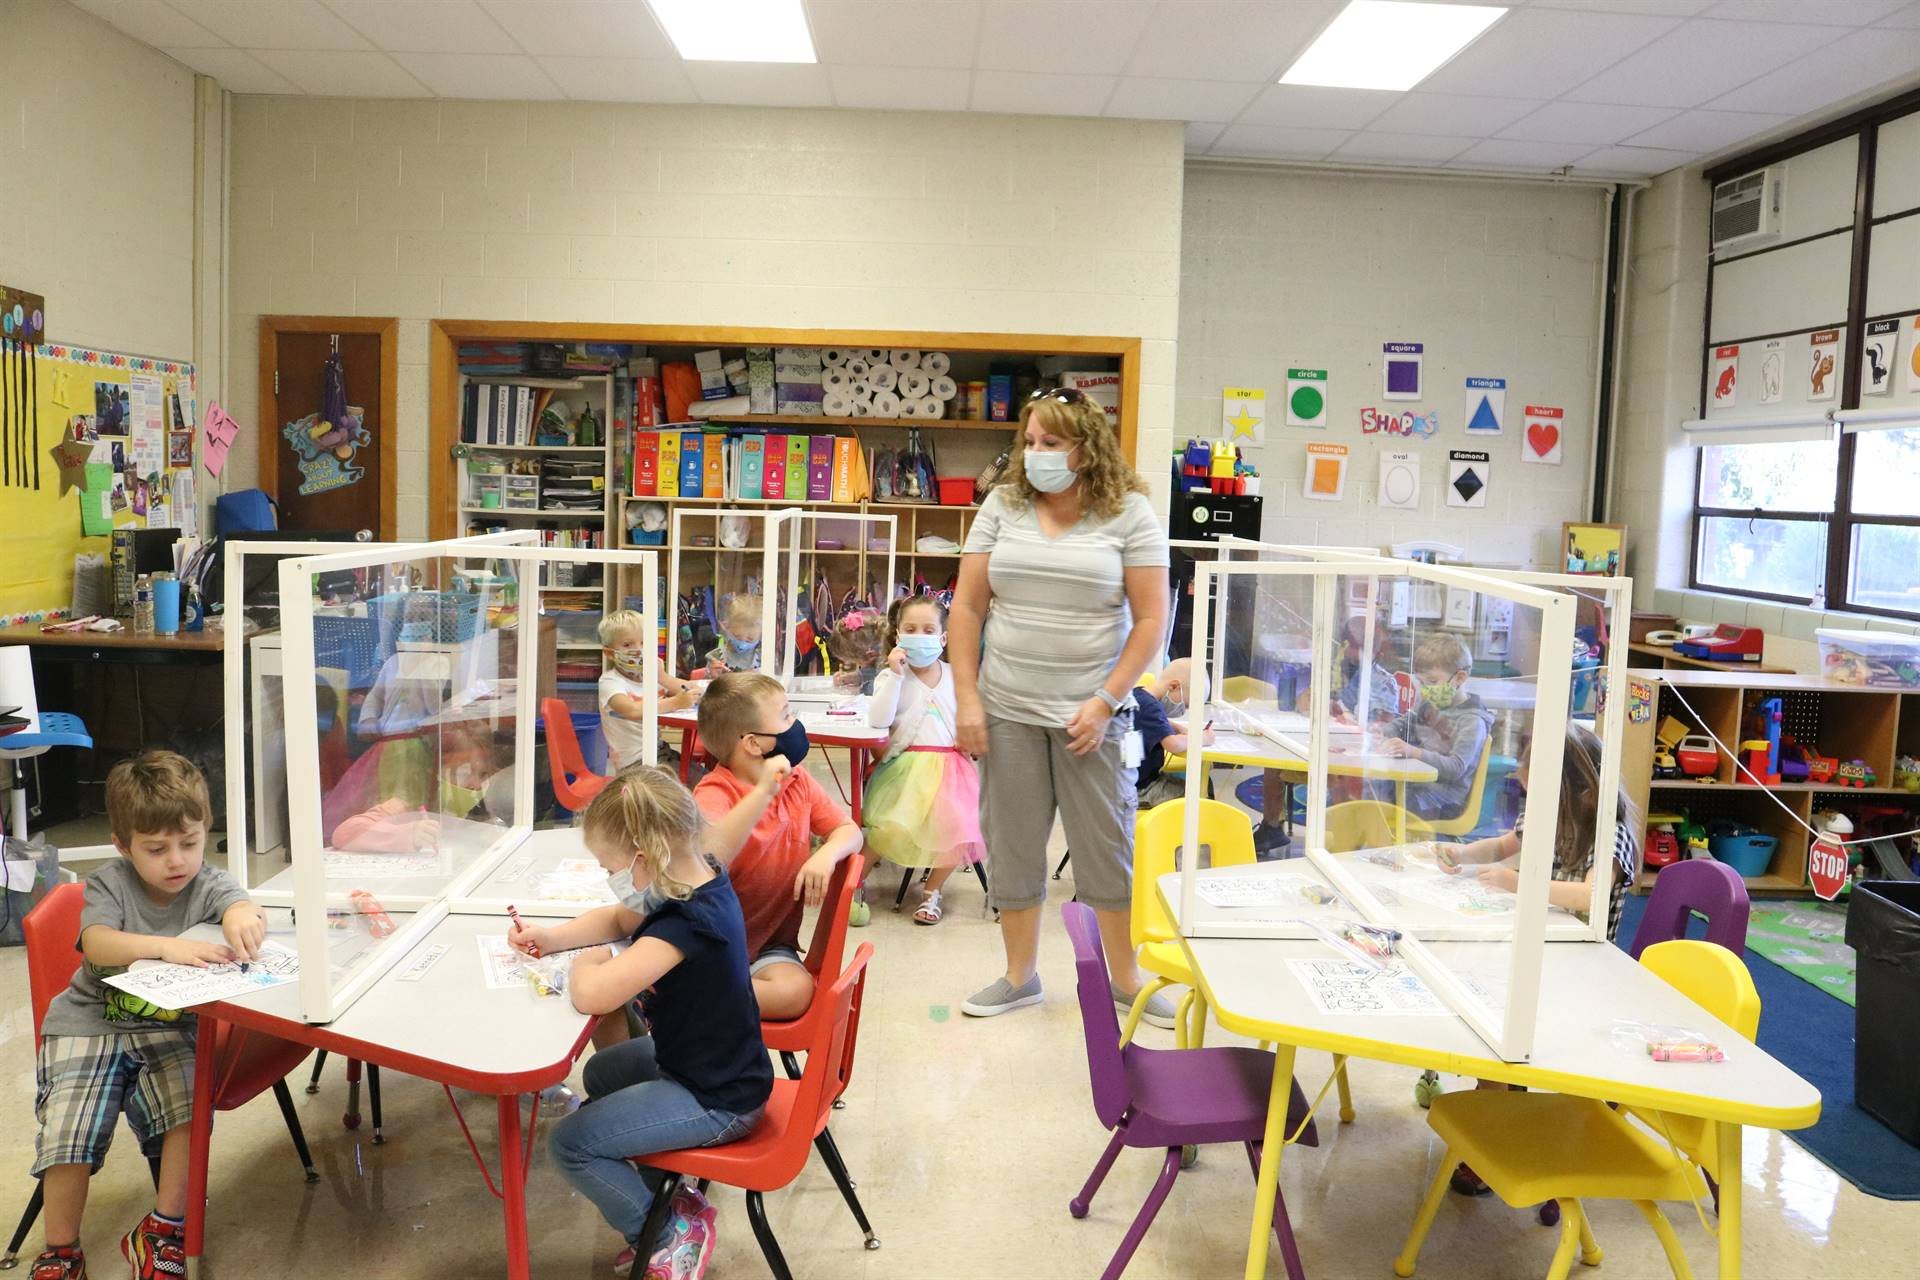 teacher standing in middle of room with kids at tables